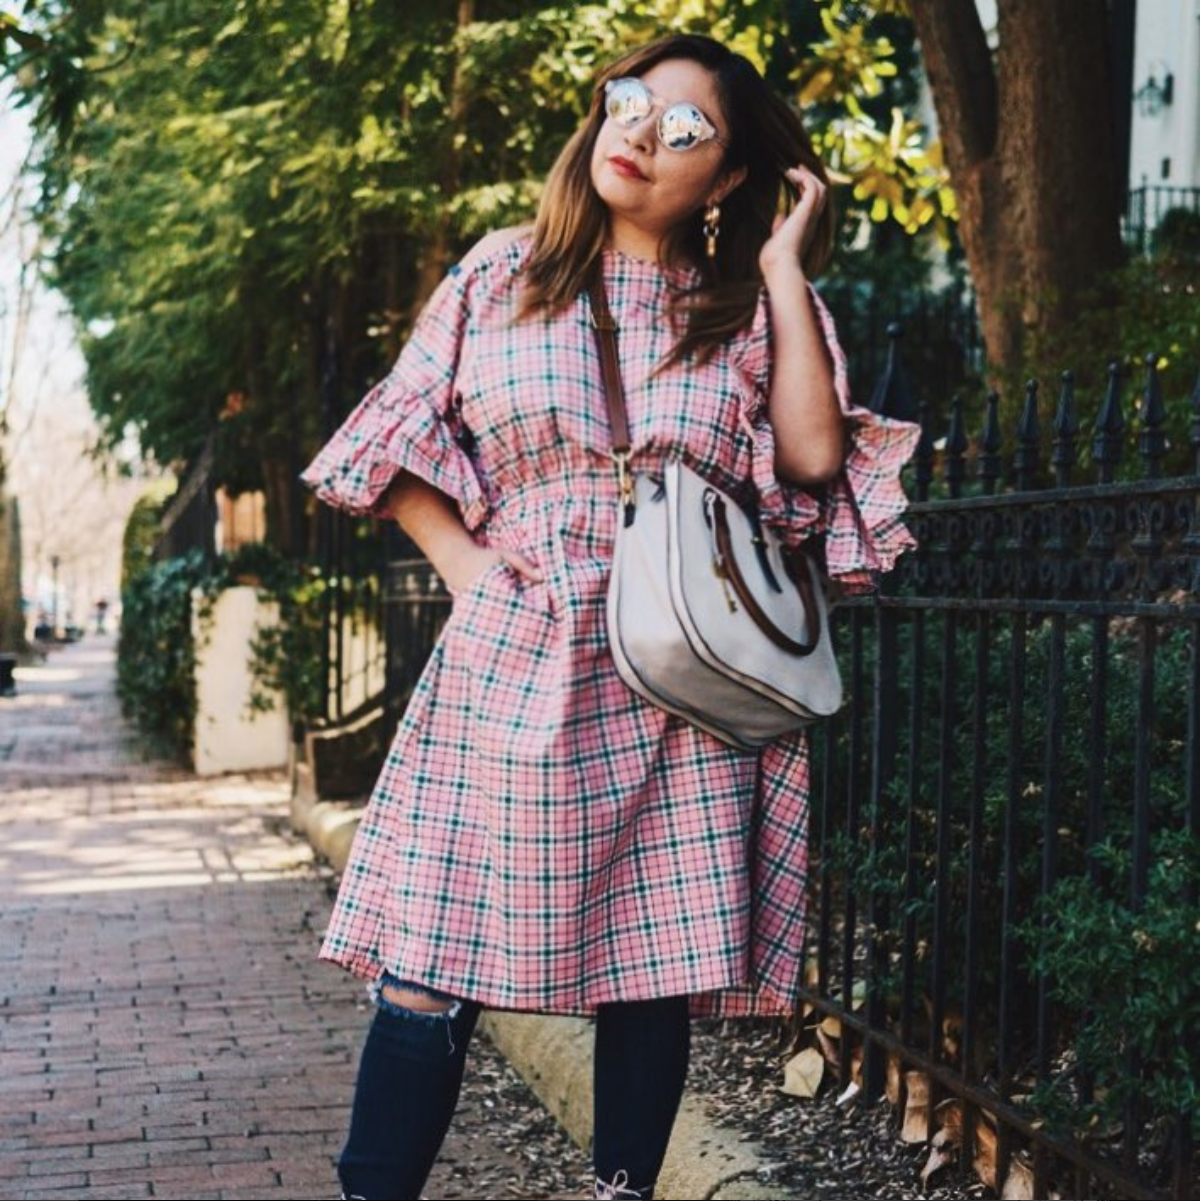 Ruffle sleeves are also going to be huge this spring and they look so modern with a pink pattern. (Image via @spicycandydc)